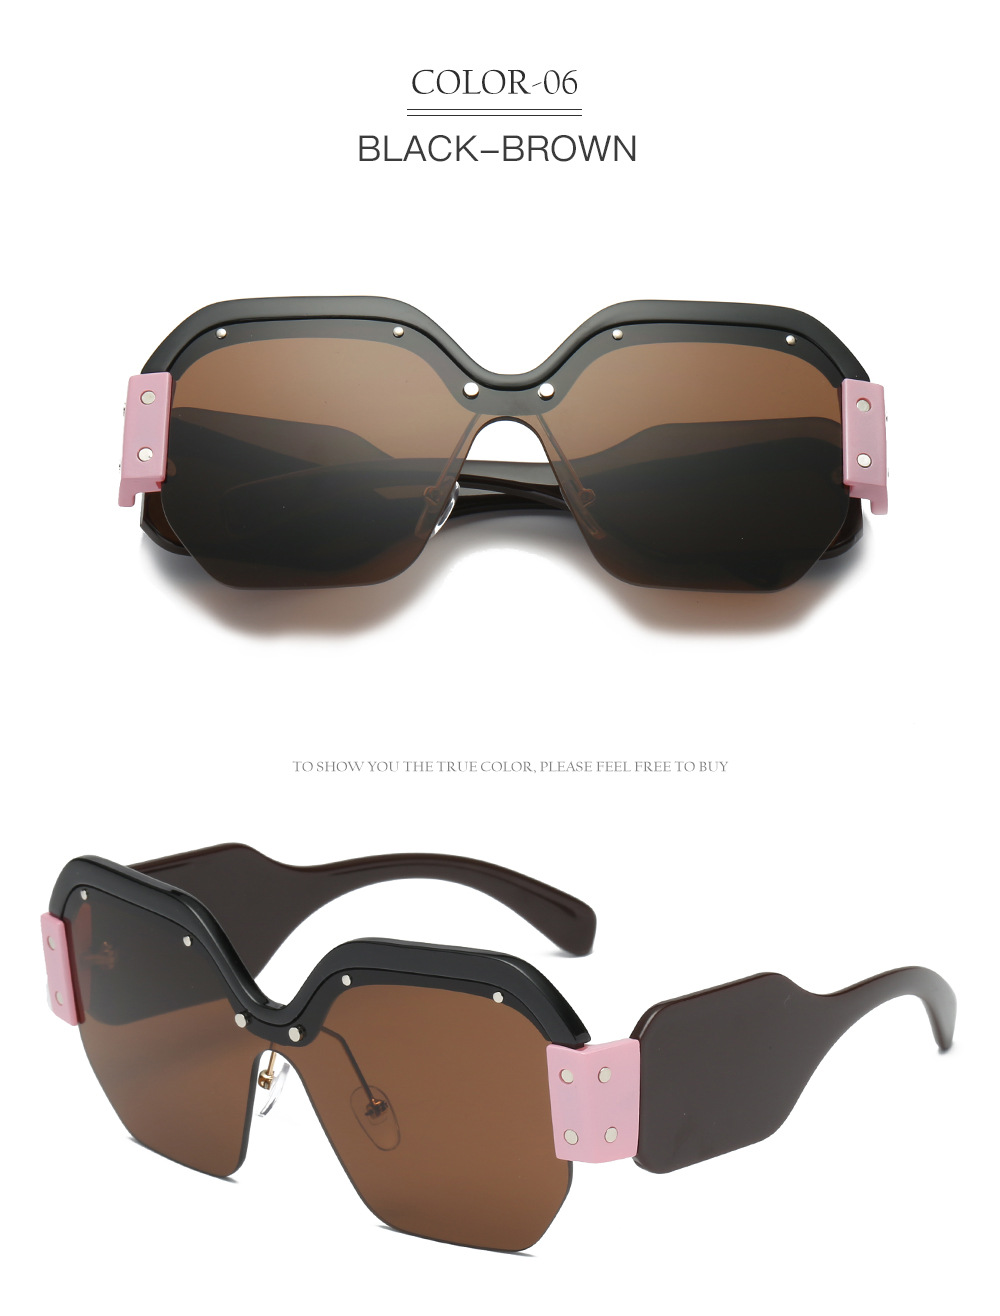 Hfaa195b9ed0f42b78a6efcc52b53c318y - Sexy Rimless Oversized Sunglasses Women Vintage Red Pink Luxury Brand Sun Glasses For Female Rivet Big Frame Male Shades